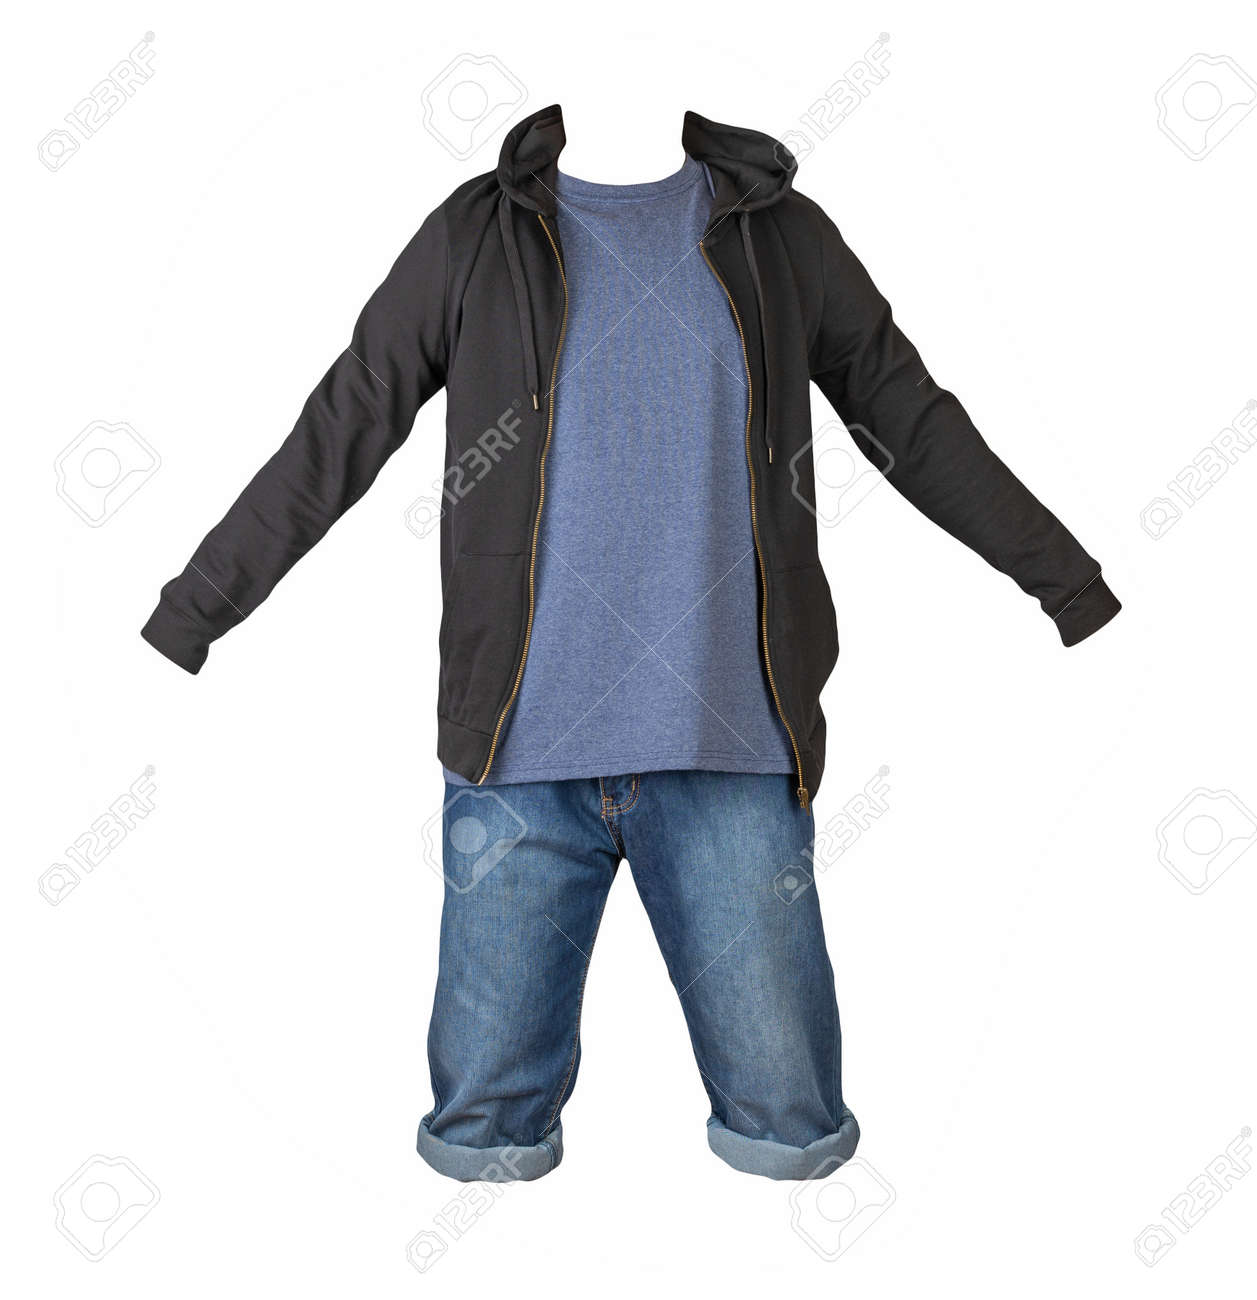 Denim dark blue shorts, navy t-shirt and black sweatshirt with zipper and hood isolated on white background - 172073955